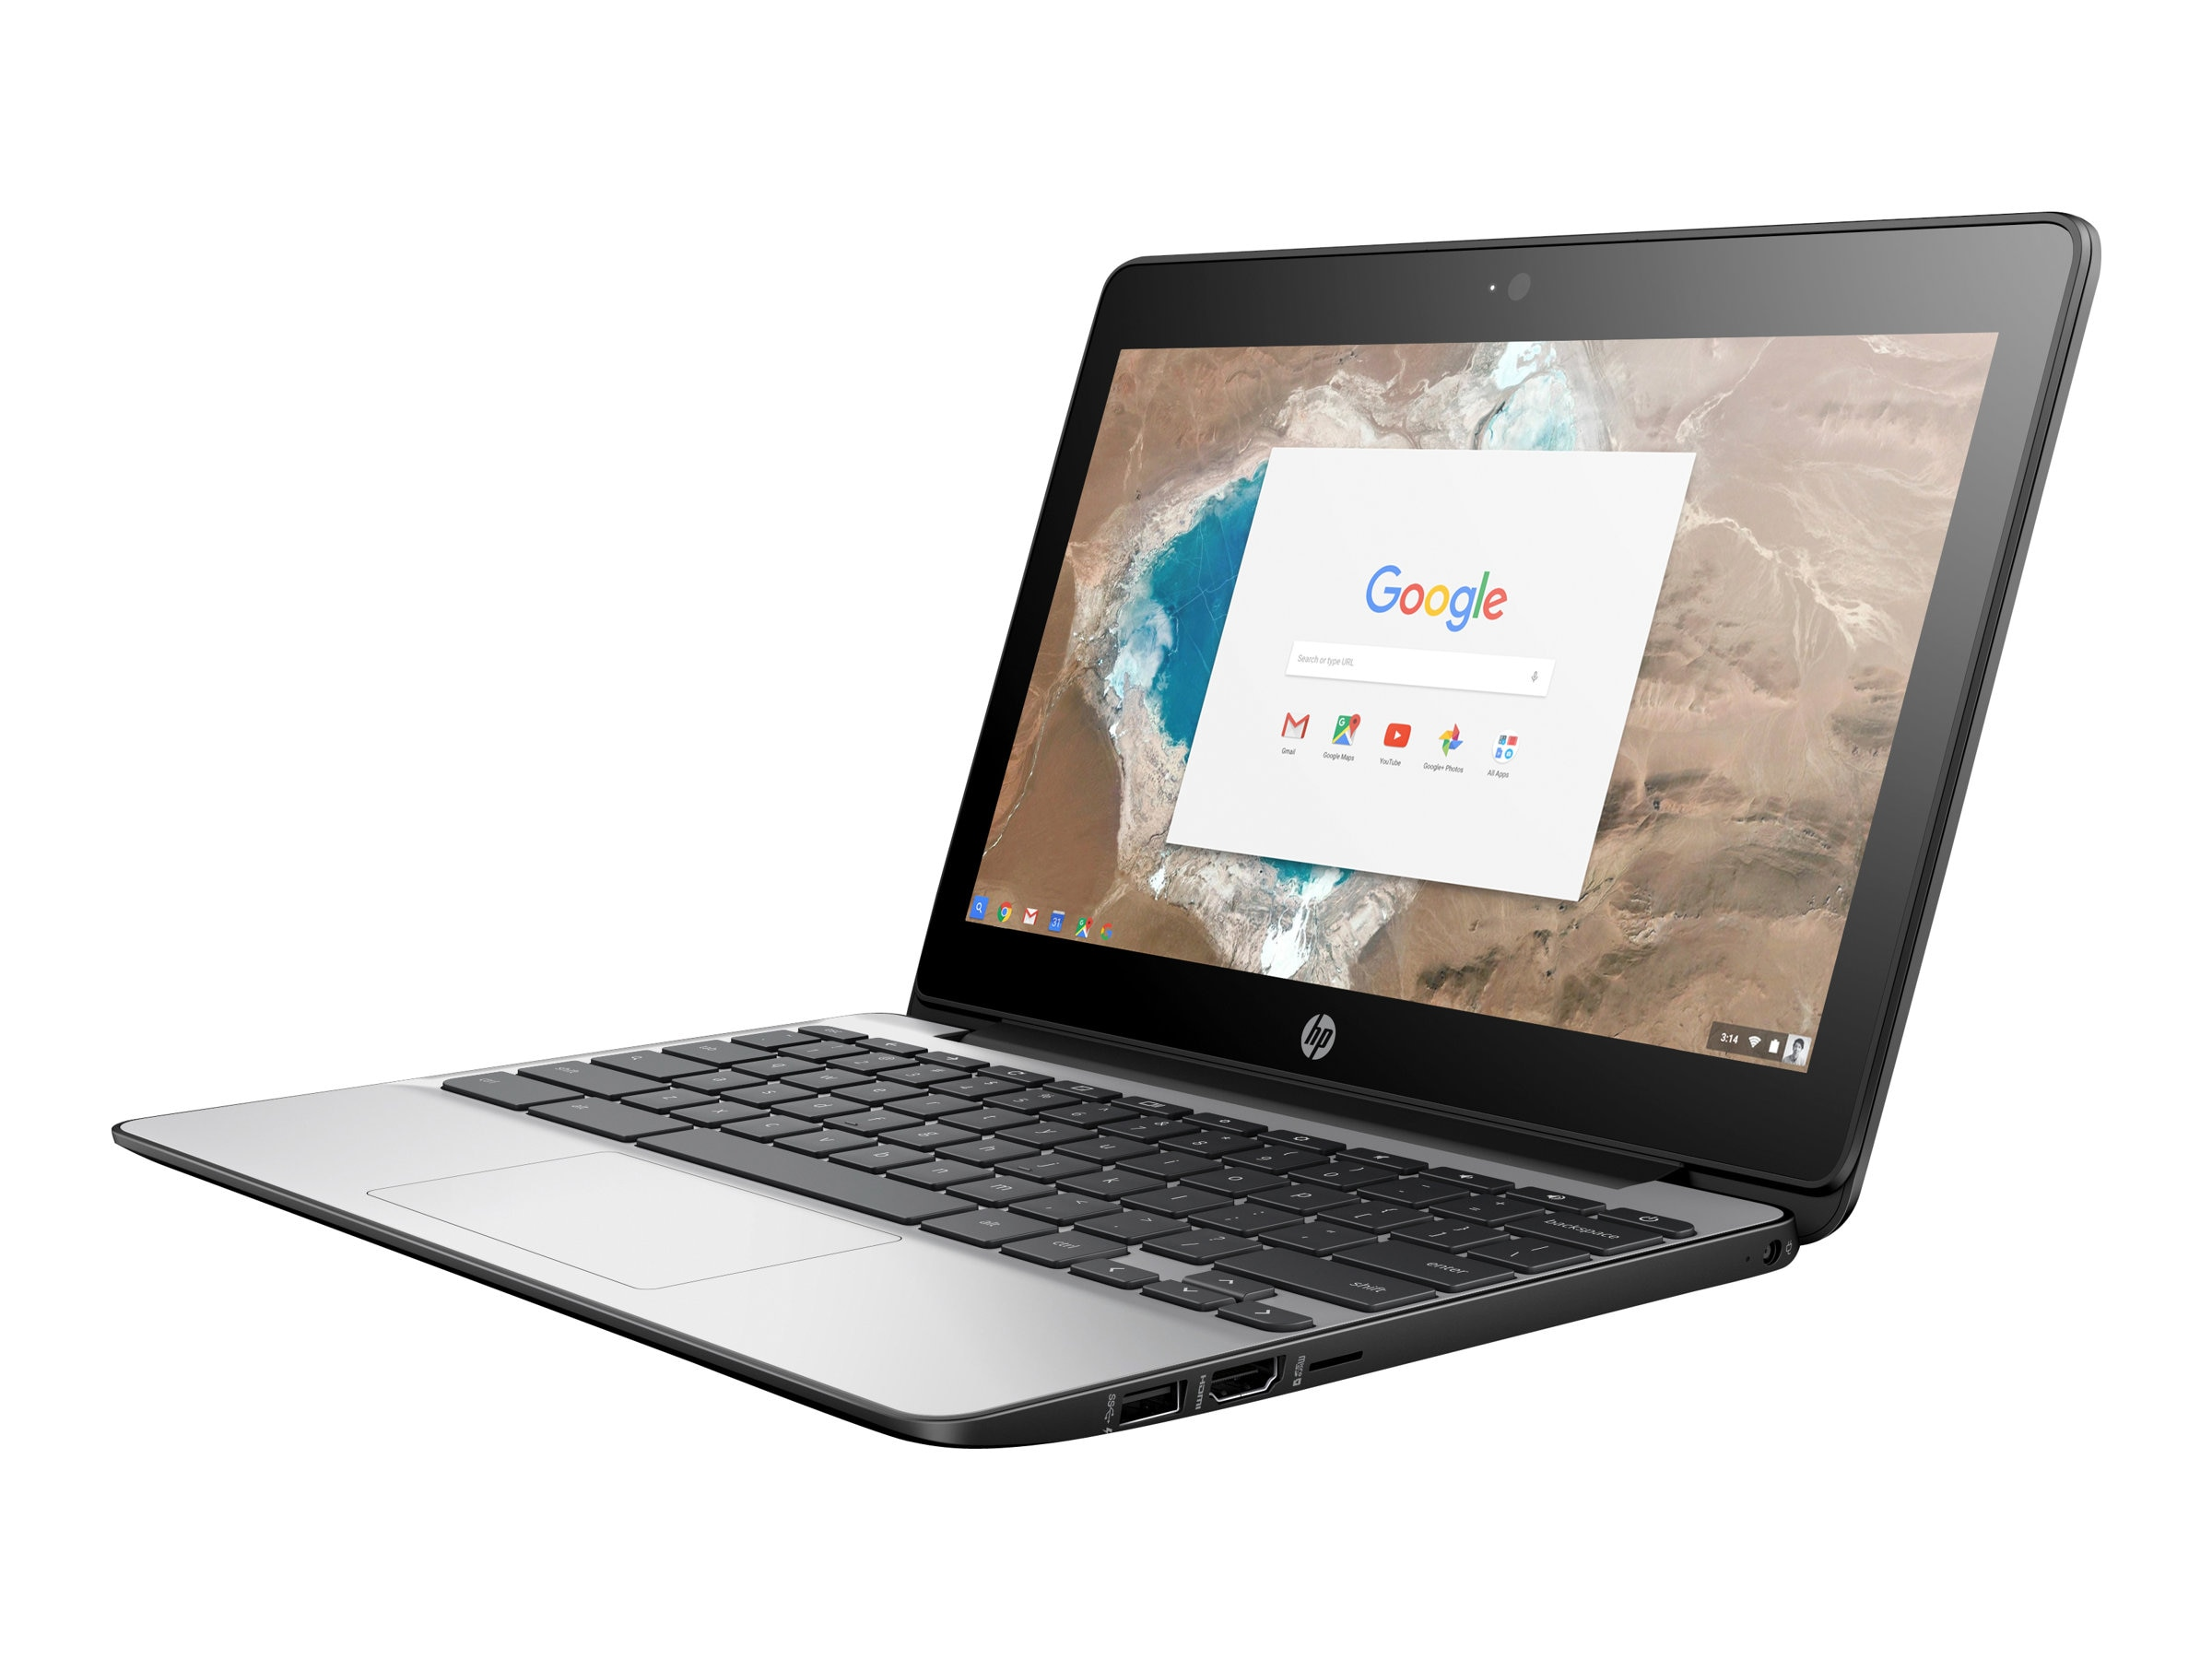 HP Chromebook 11 G4 EE 2.16GHz Celeron 11.6in display